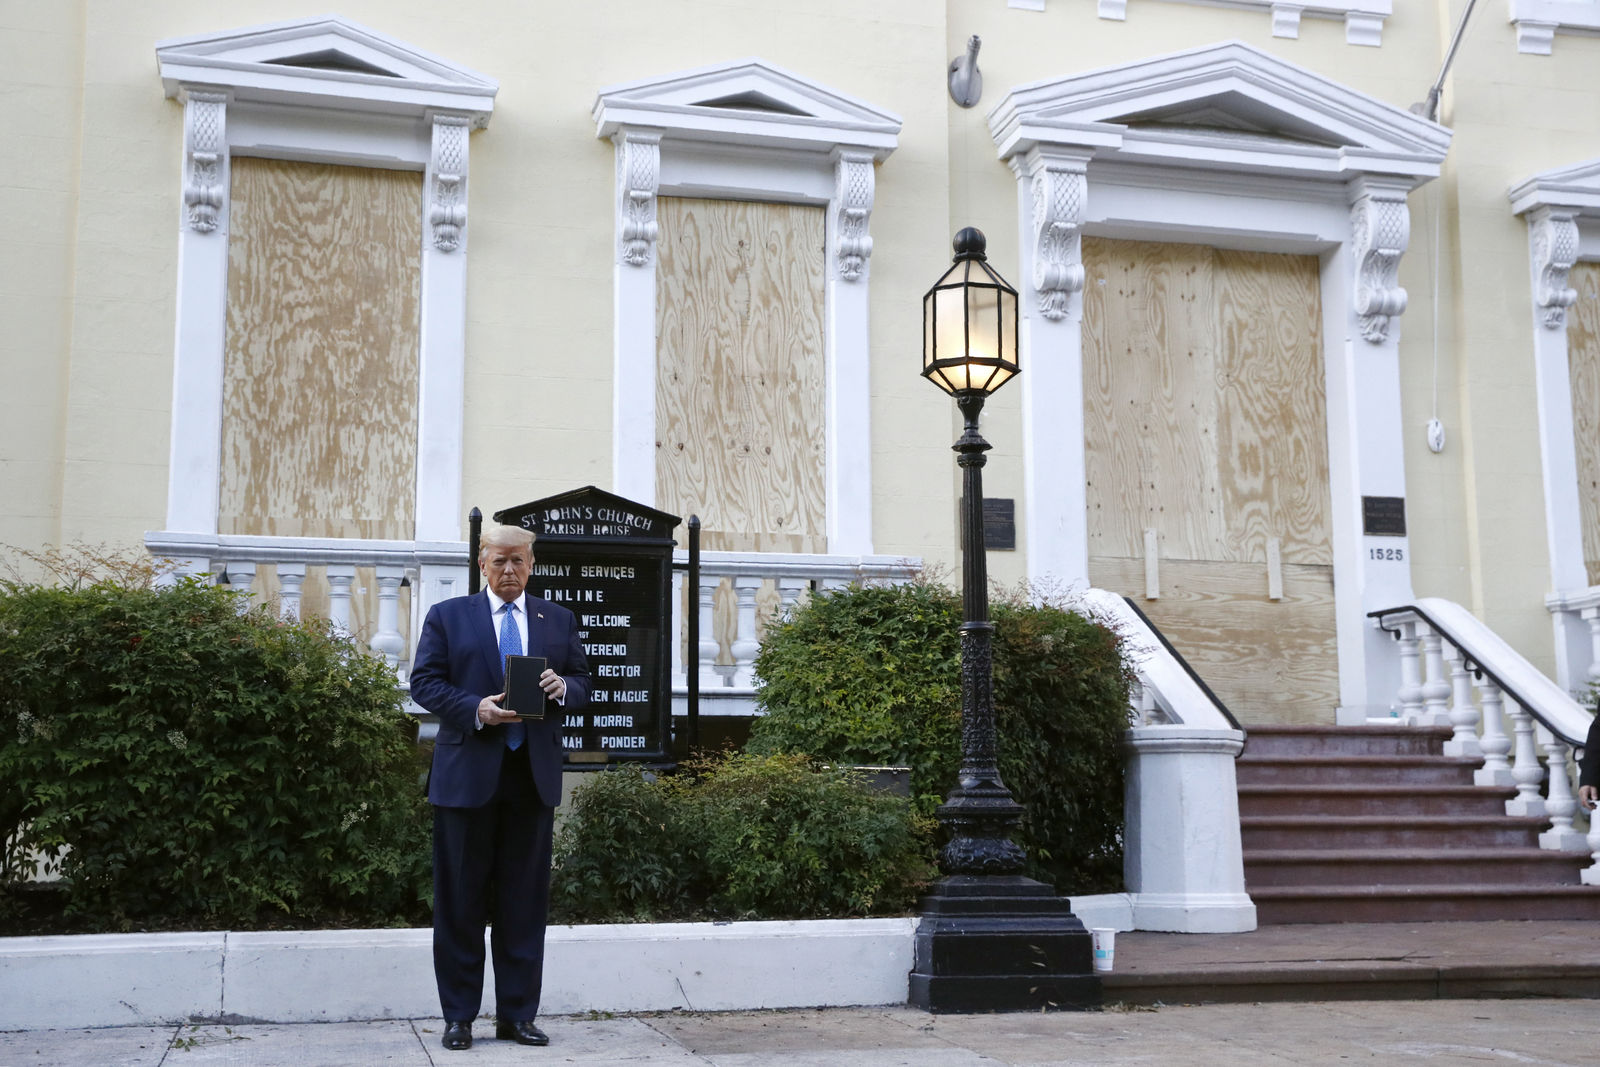 President Donald Trump holds a Bible as he visits outside St. John's Church across Lafayette Park from the White House Monday, June 1, 2020, in Washington. (AP Photo/Patrick Semansky)